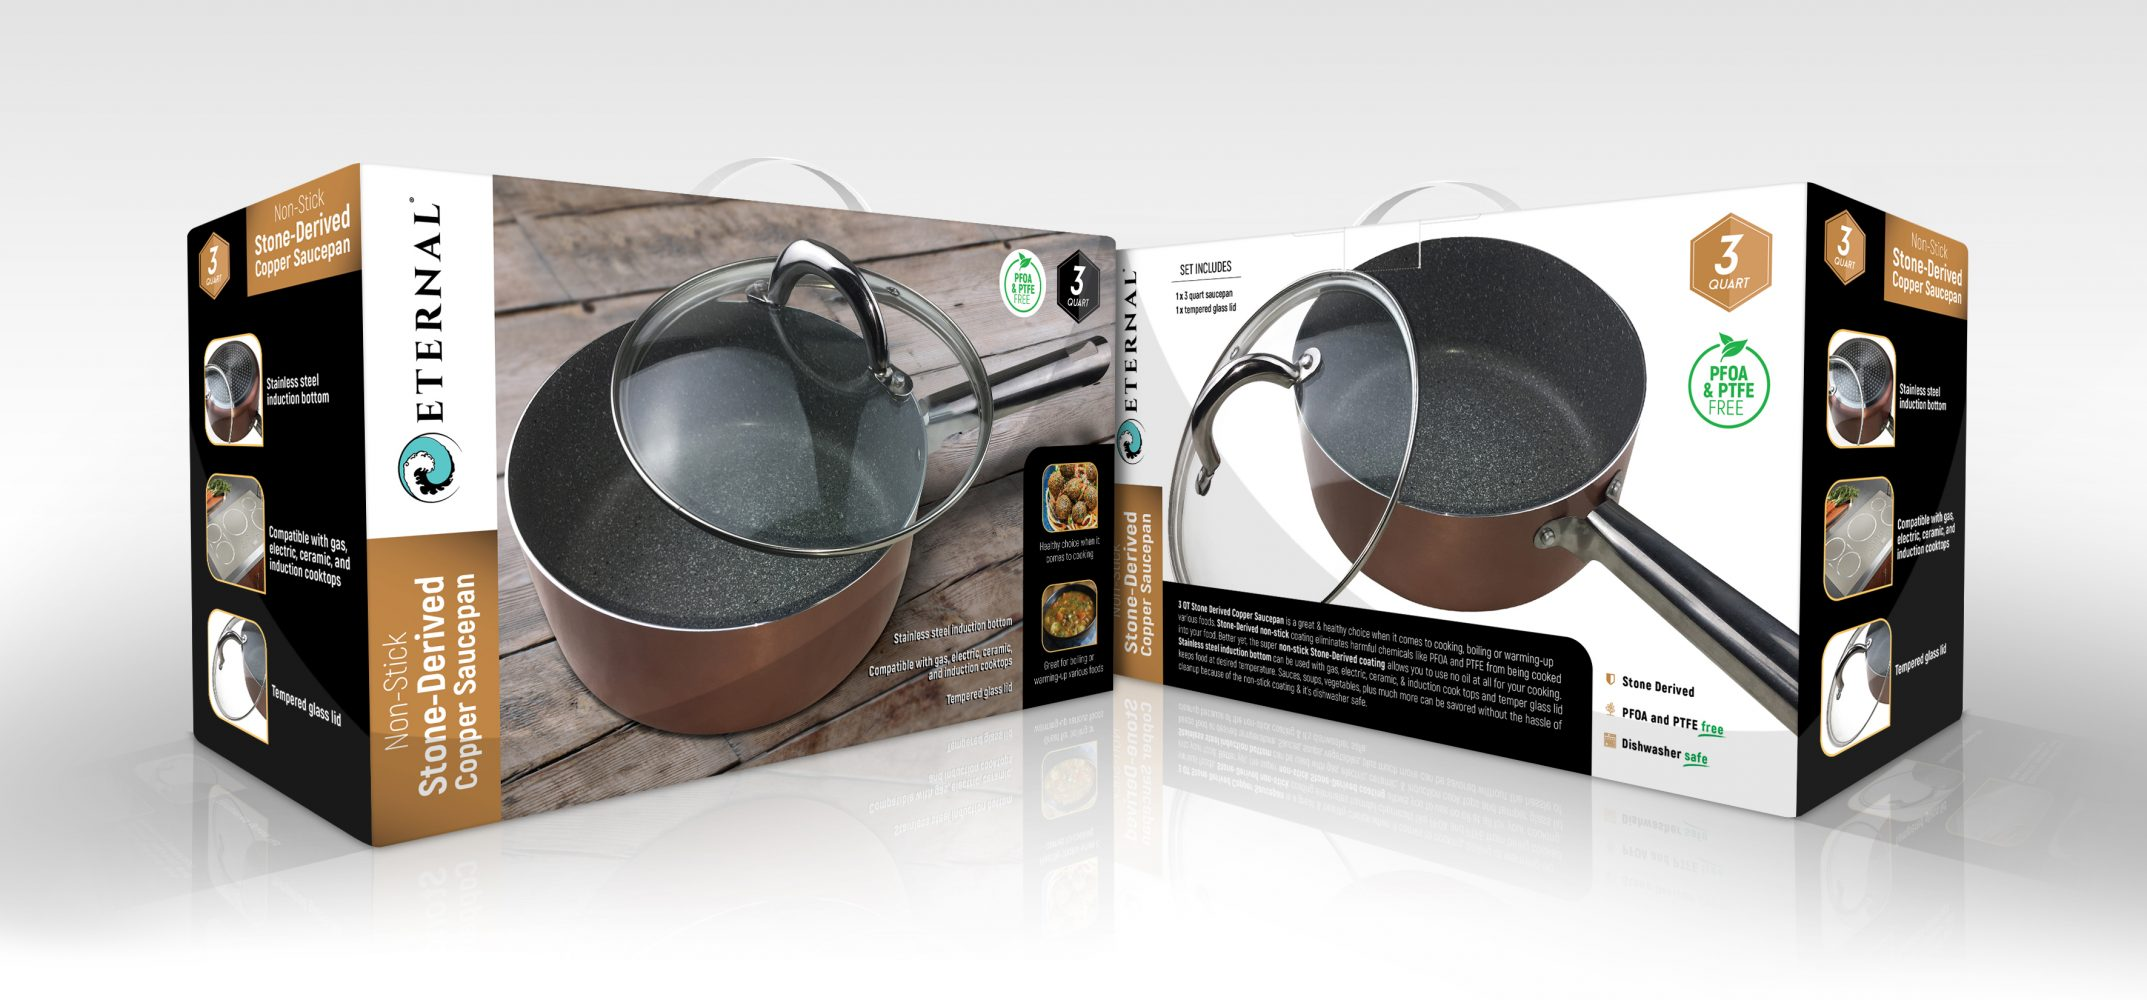 stone cookware PG93835